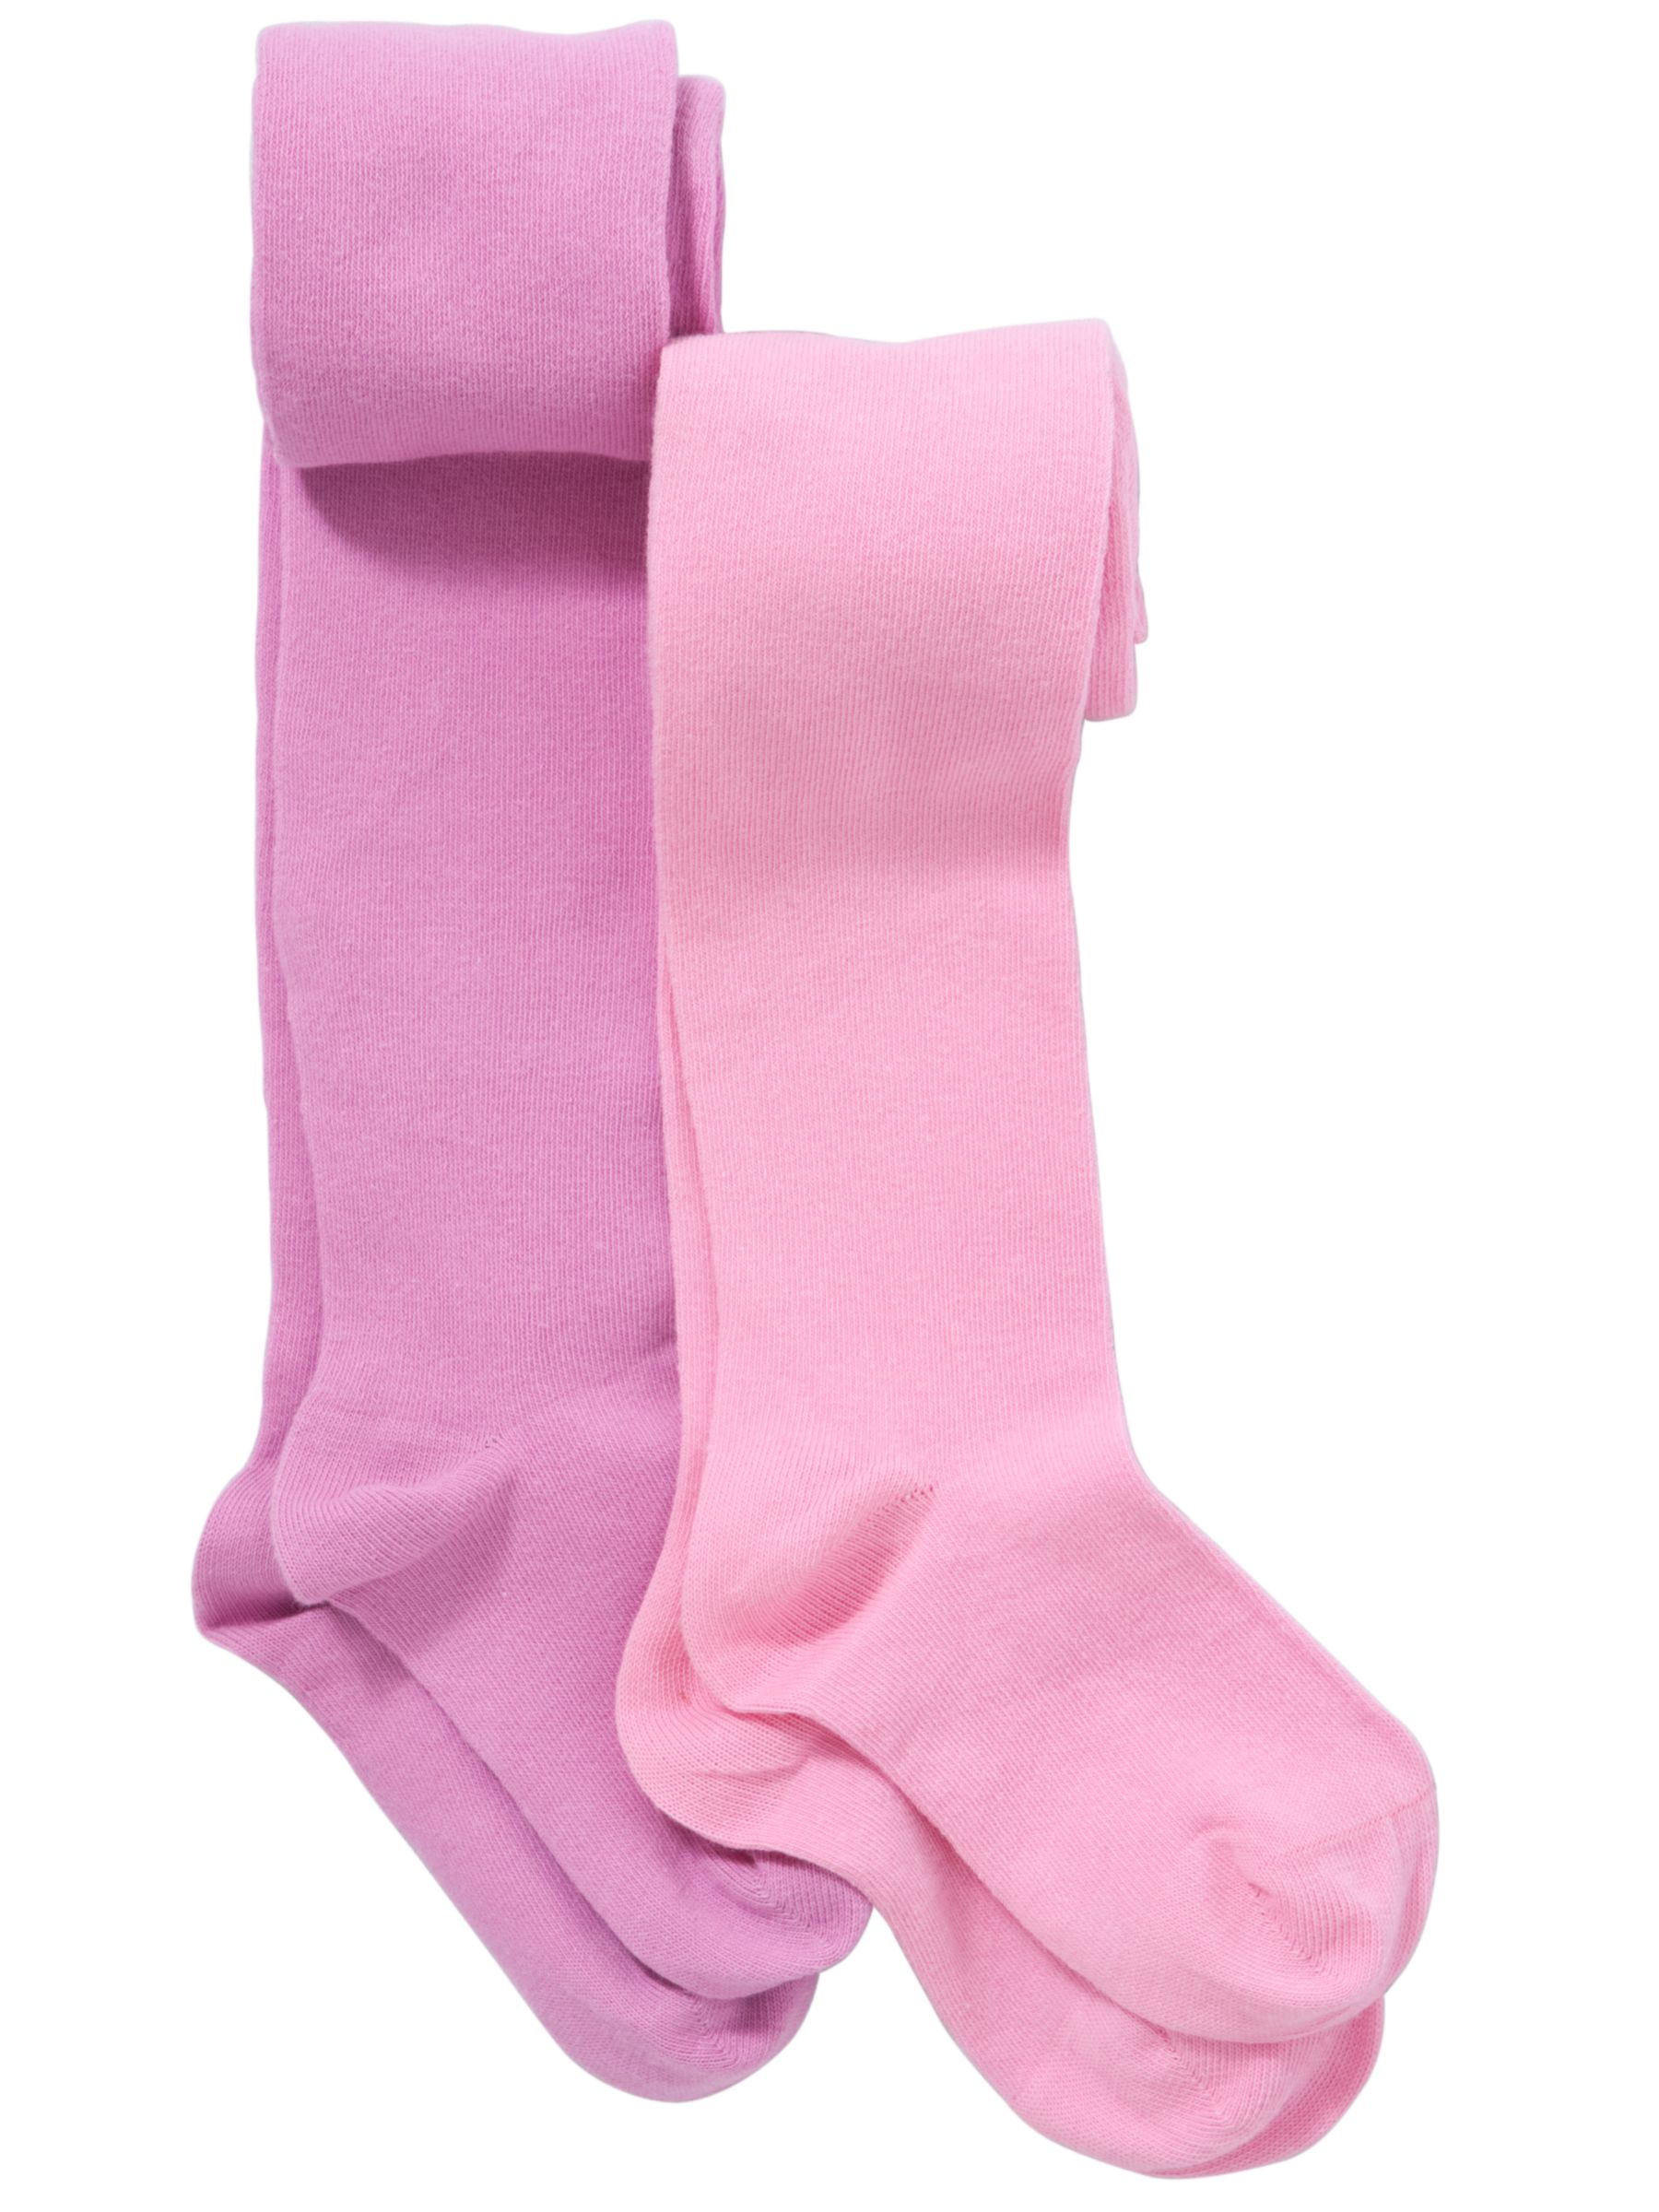 John Lewis Girl Plain Tights, Pack of 2, Pink/Lilac